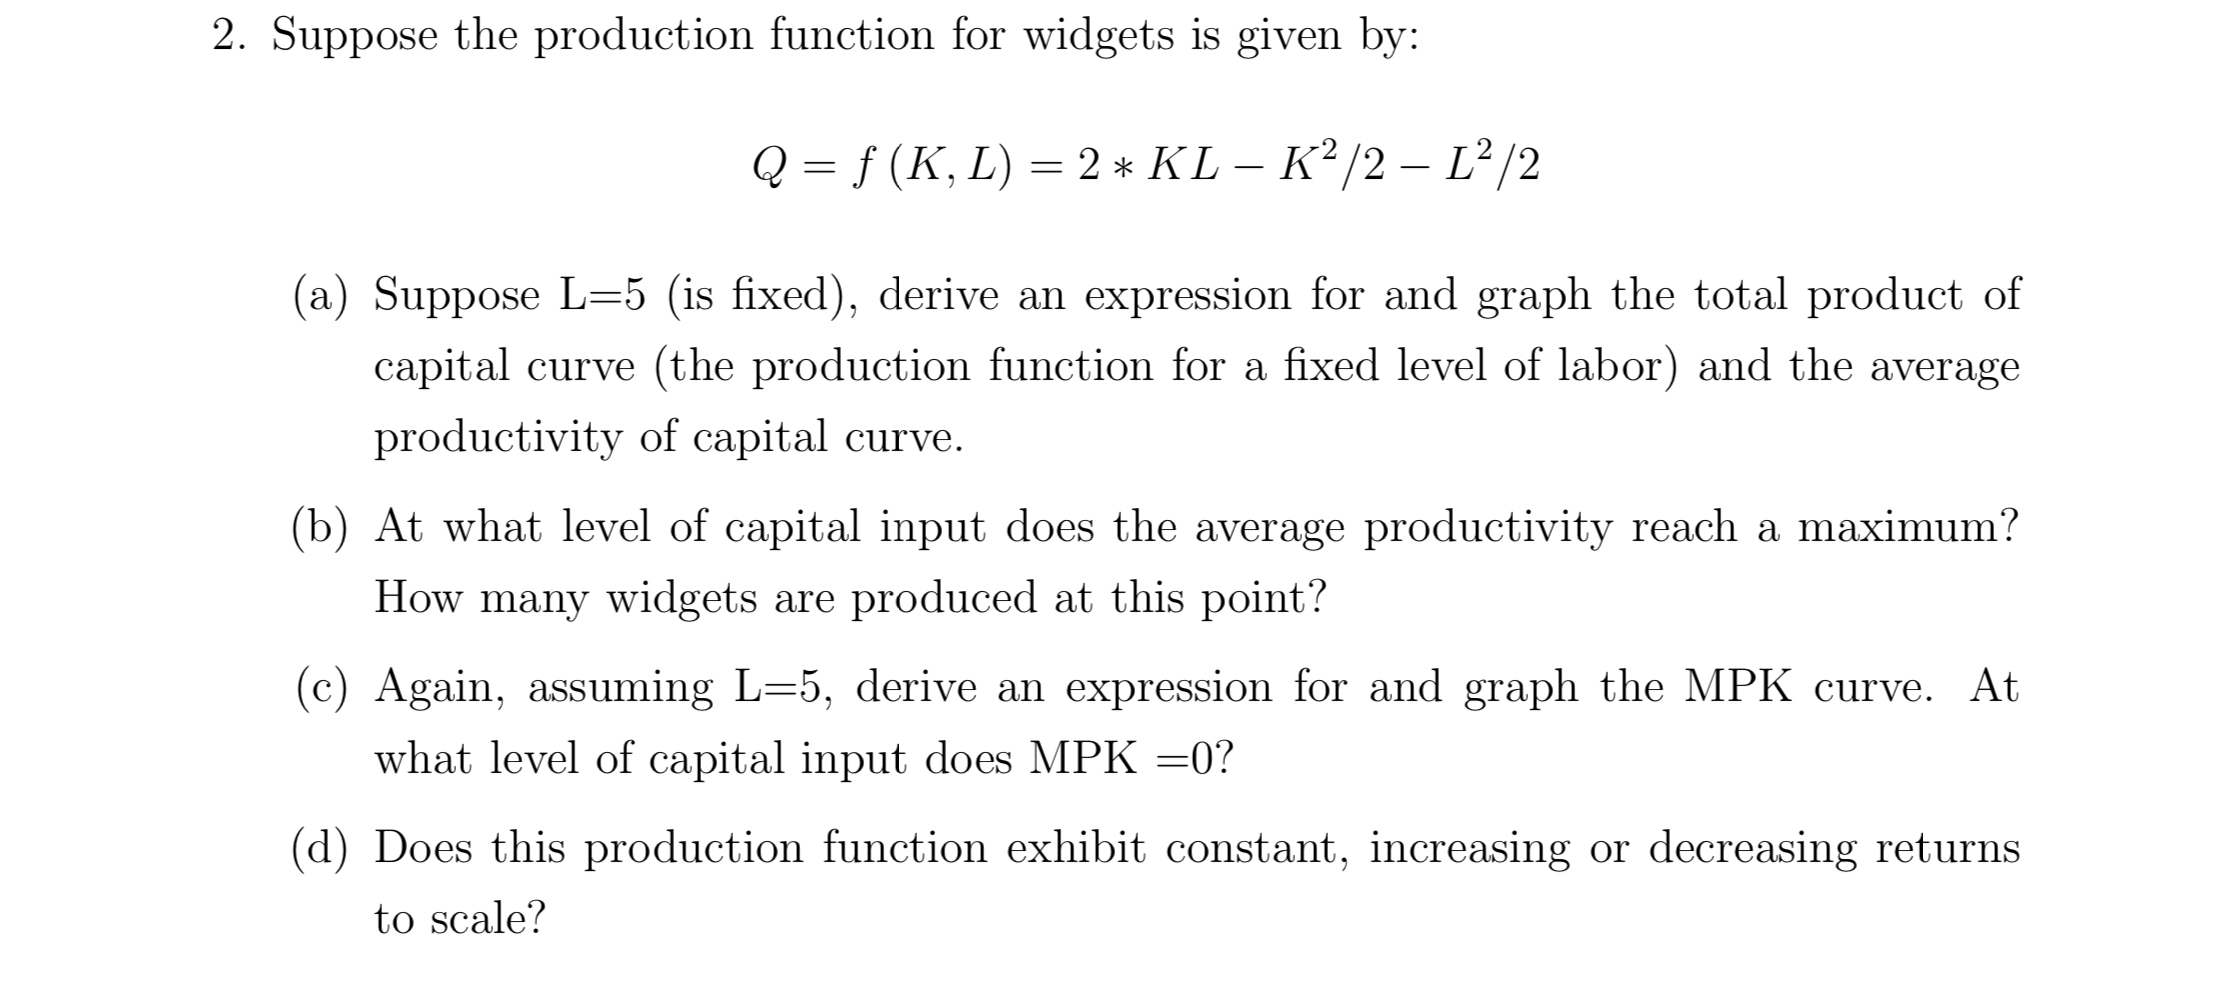 2. Suppose the production function for widgets is given by: f (K, L) 2* KL - K2/2- L2/2 Q 1 (a) Suppose L-5 (is fixed), derive an expression for and graph the total product of capital curve (the production function for a fixed level of labor) and the average productivity of capital curve. (b) At what level of capital input does the average productivity reach a maximum? How many widgets are produced at this point? (c) Again, assuming L=5, derive an expression for and graph the MPK curve. At what level of capital input does MPK =0? (d) Does this production function exhibit constant, increasing or decreasing returns to scale?